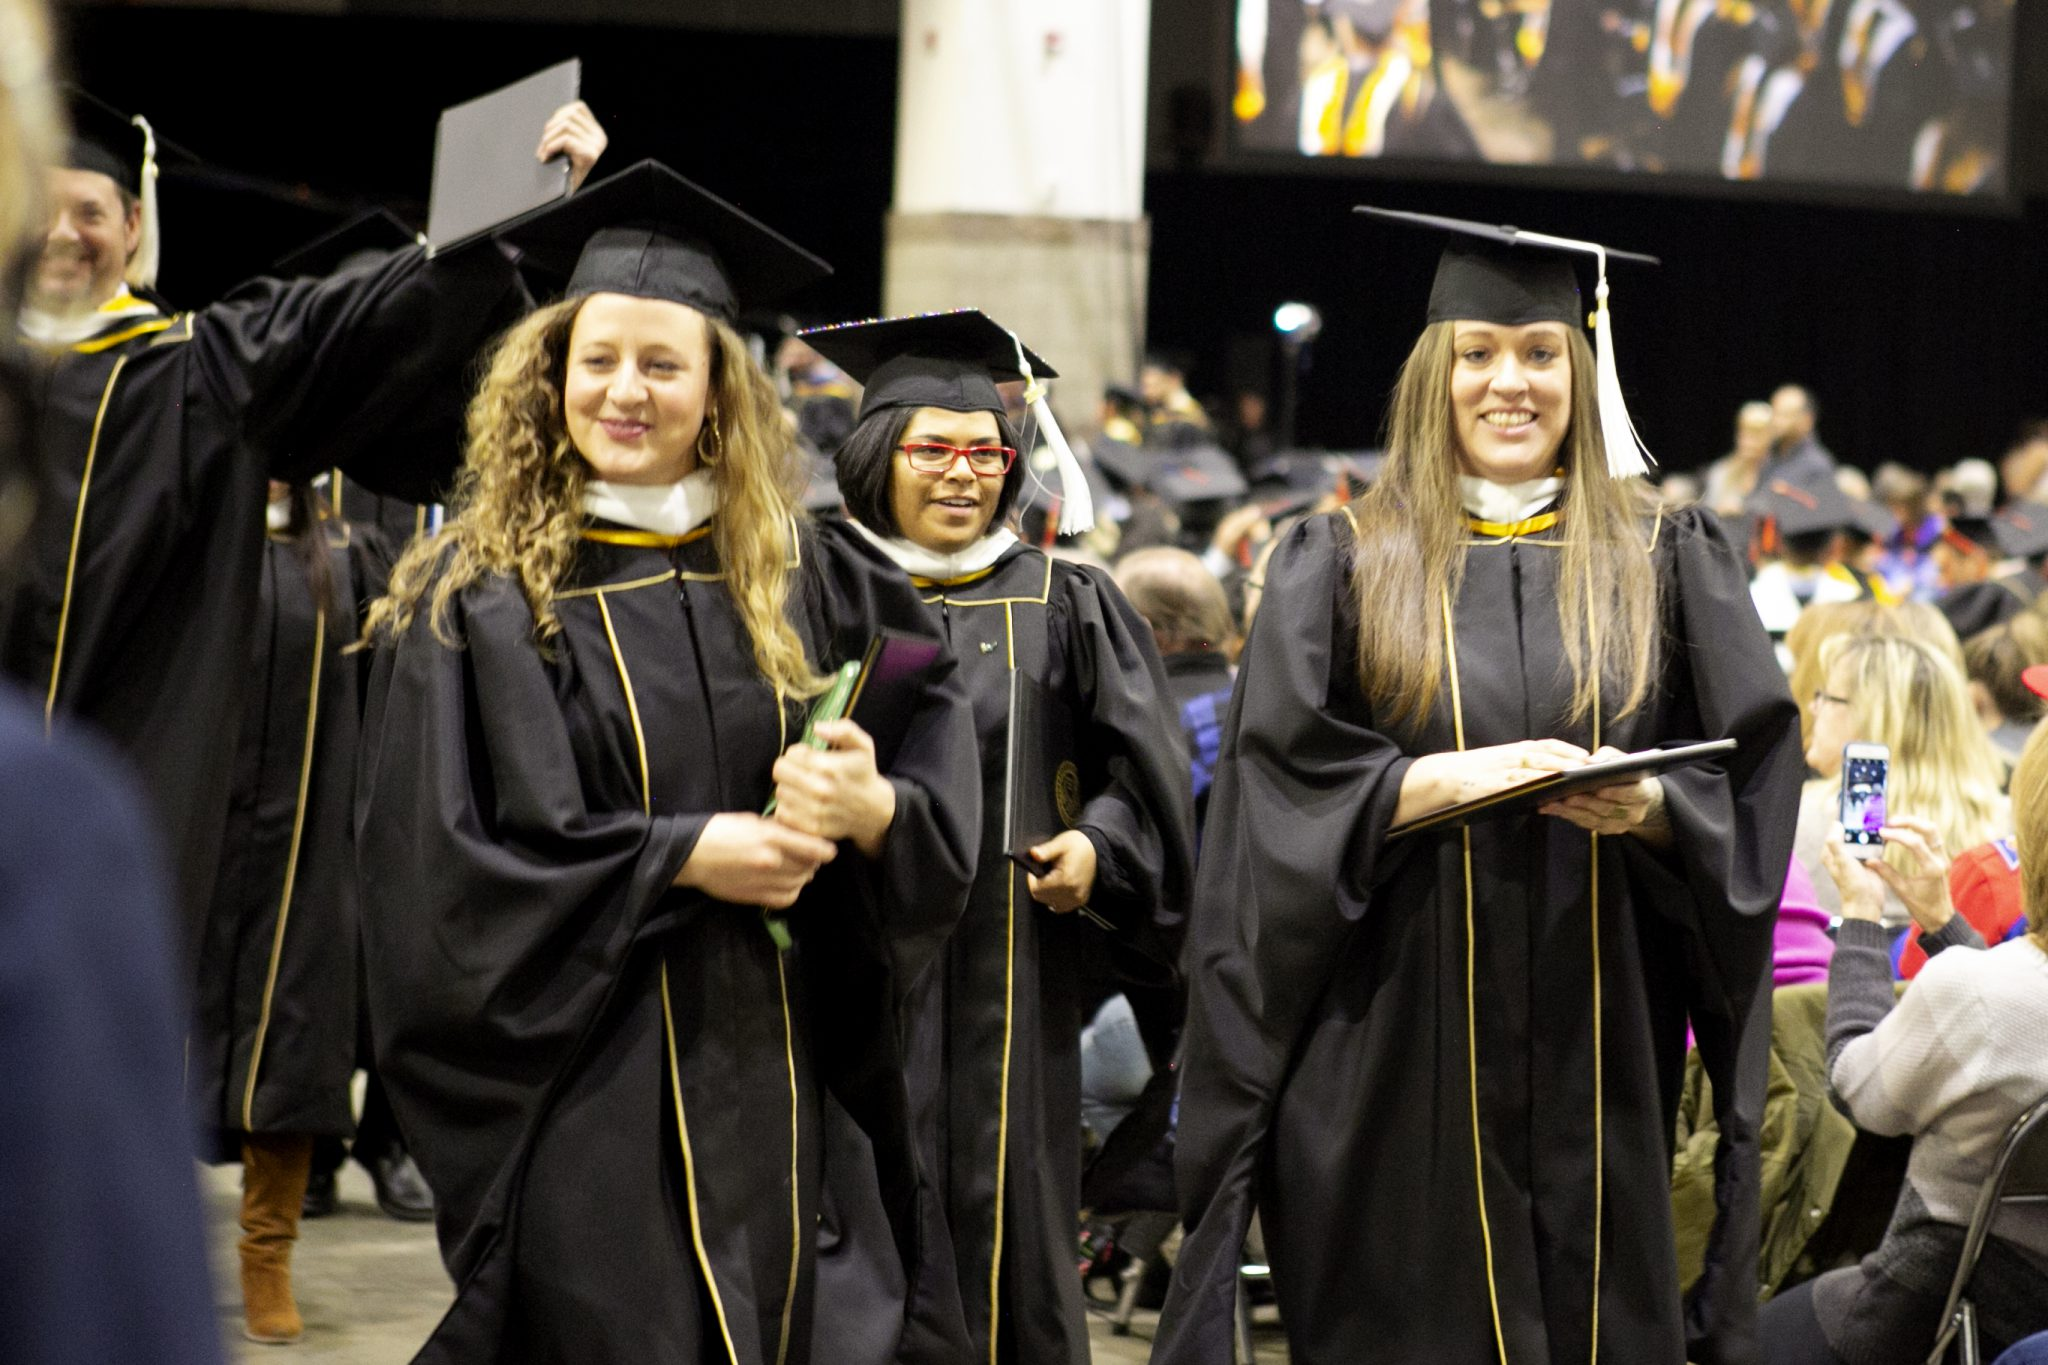 SEHD grads walking down isle after receiving diploma during fall commencement 2018